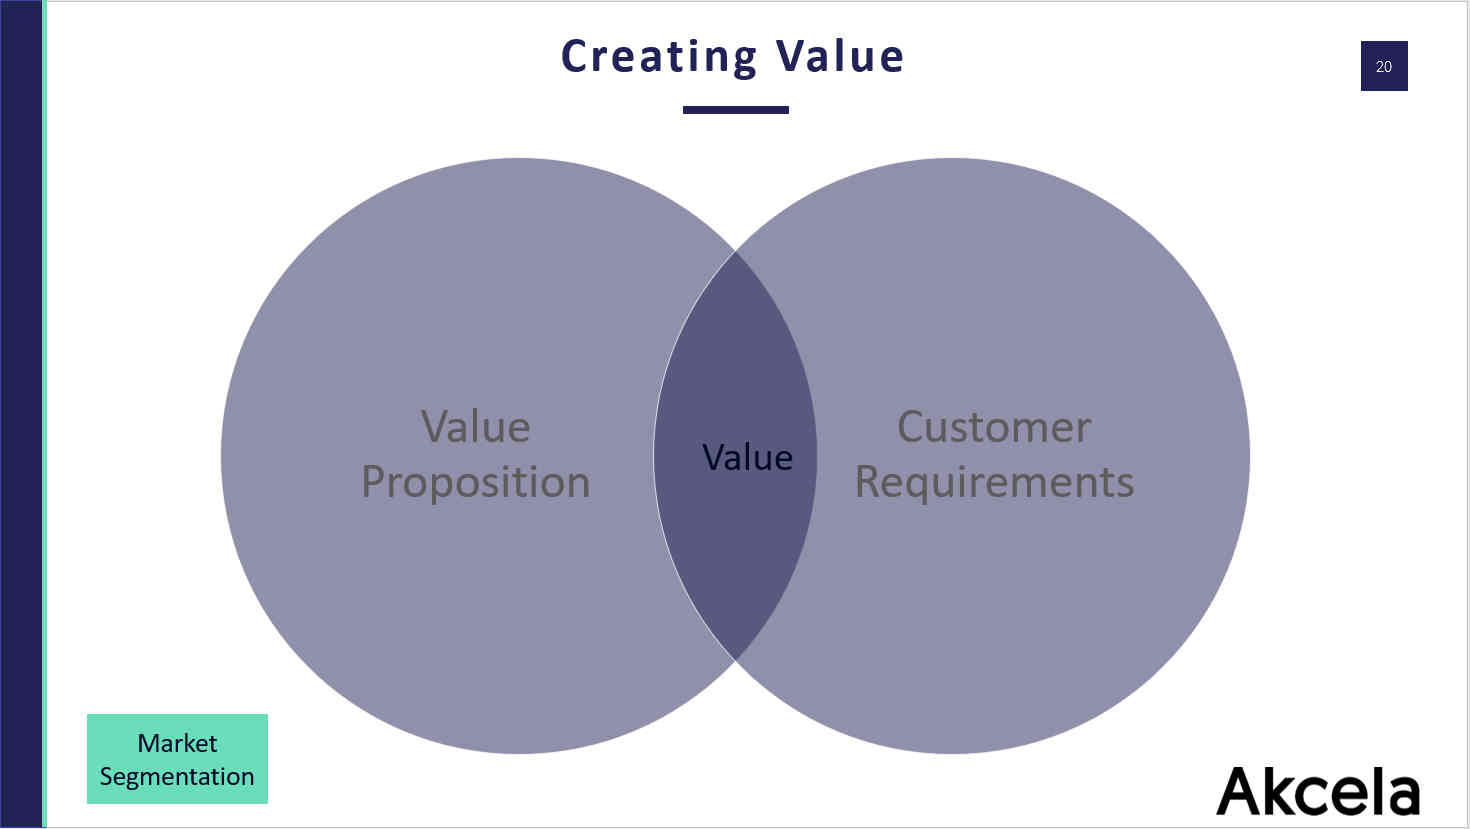 Attracting New Customers - Value Creation